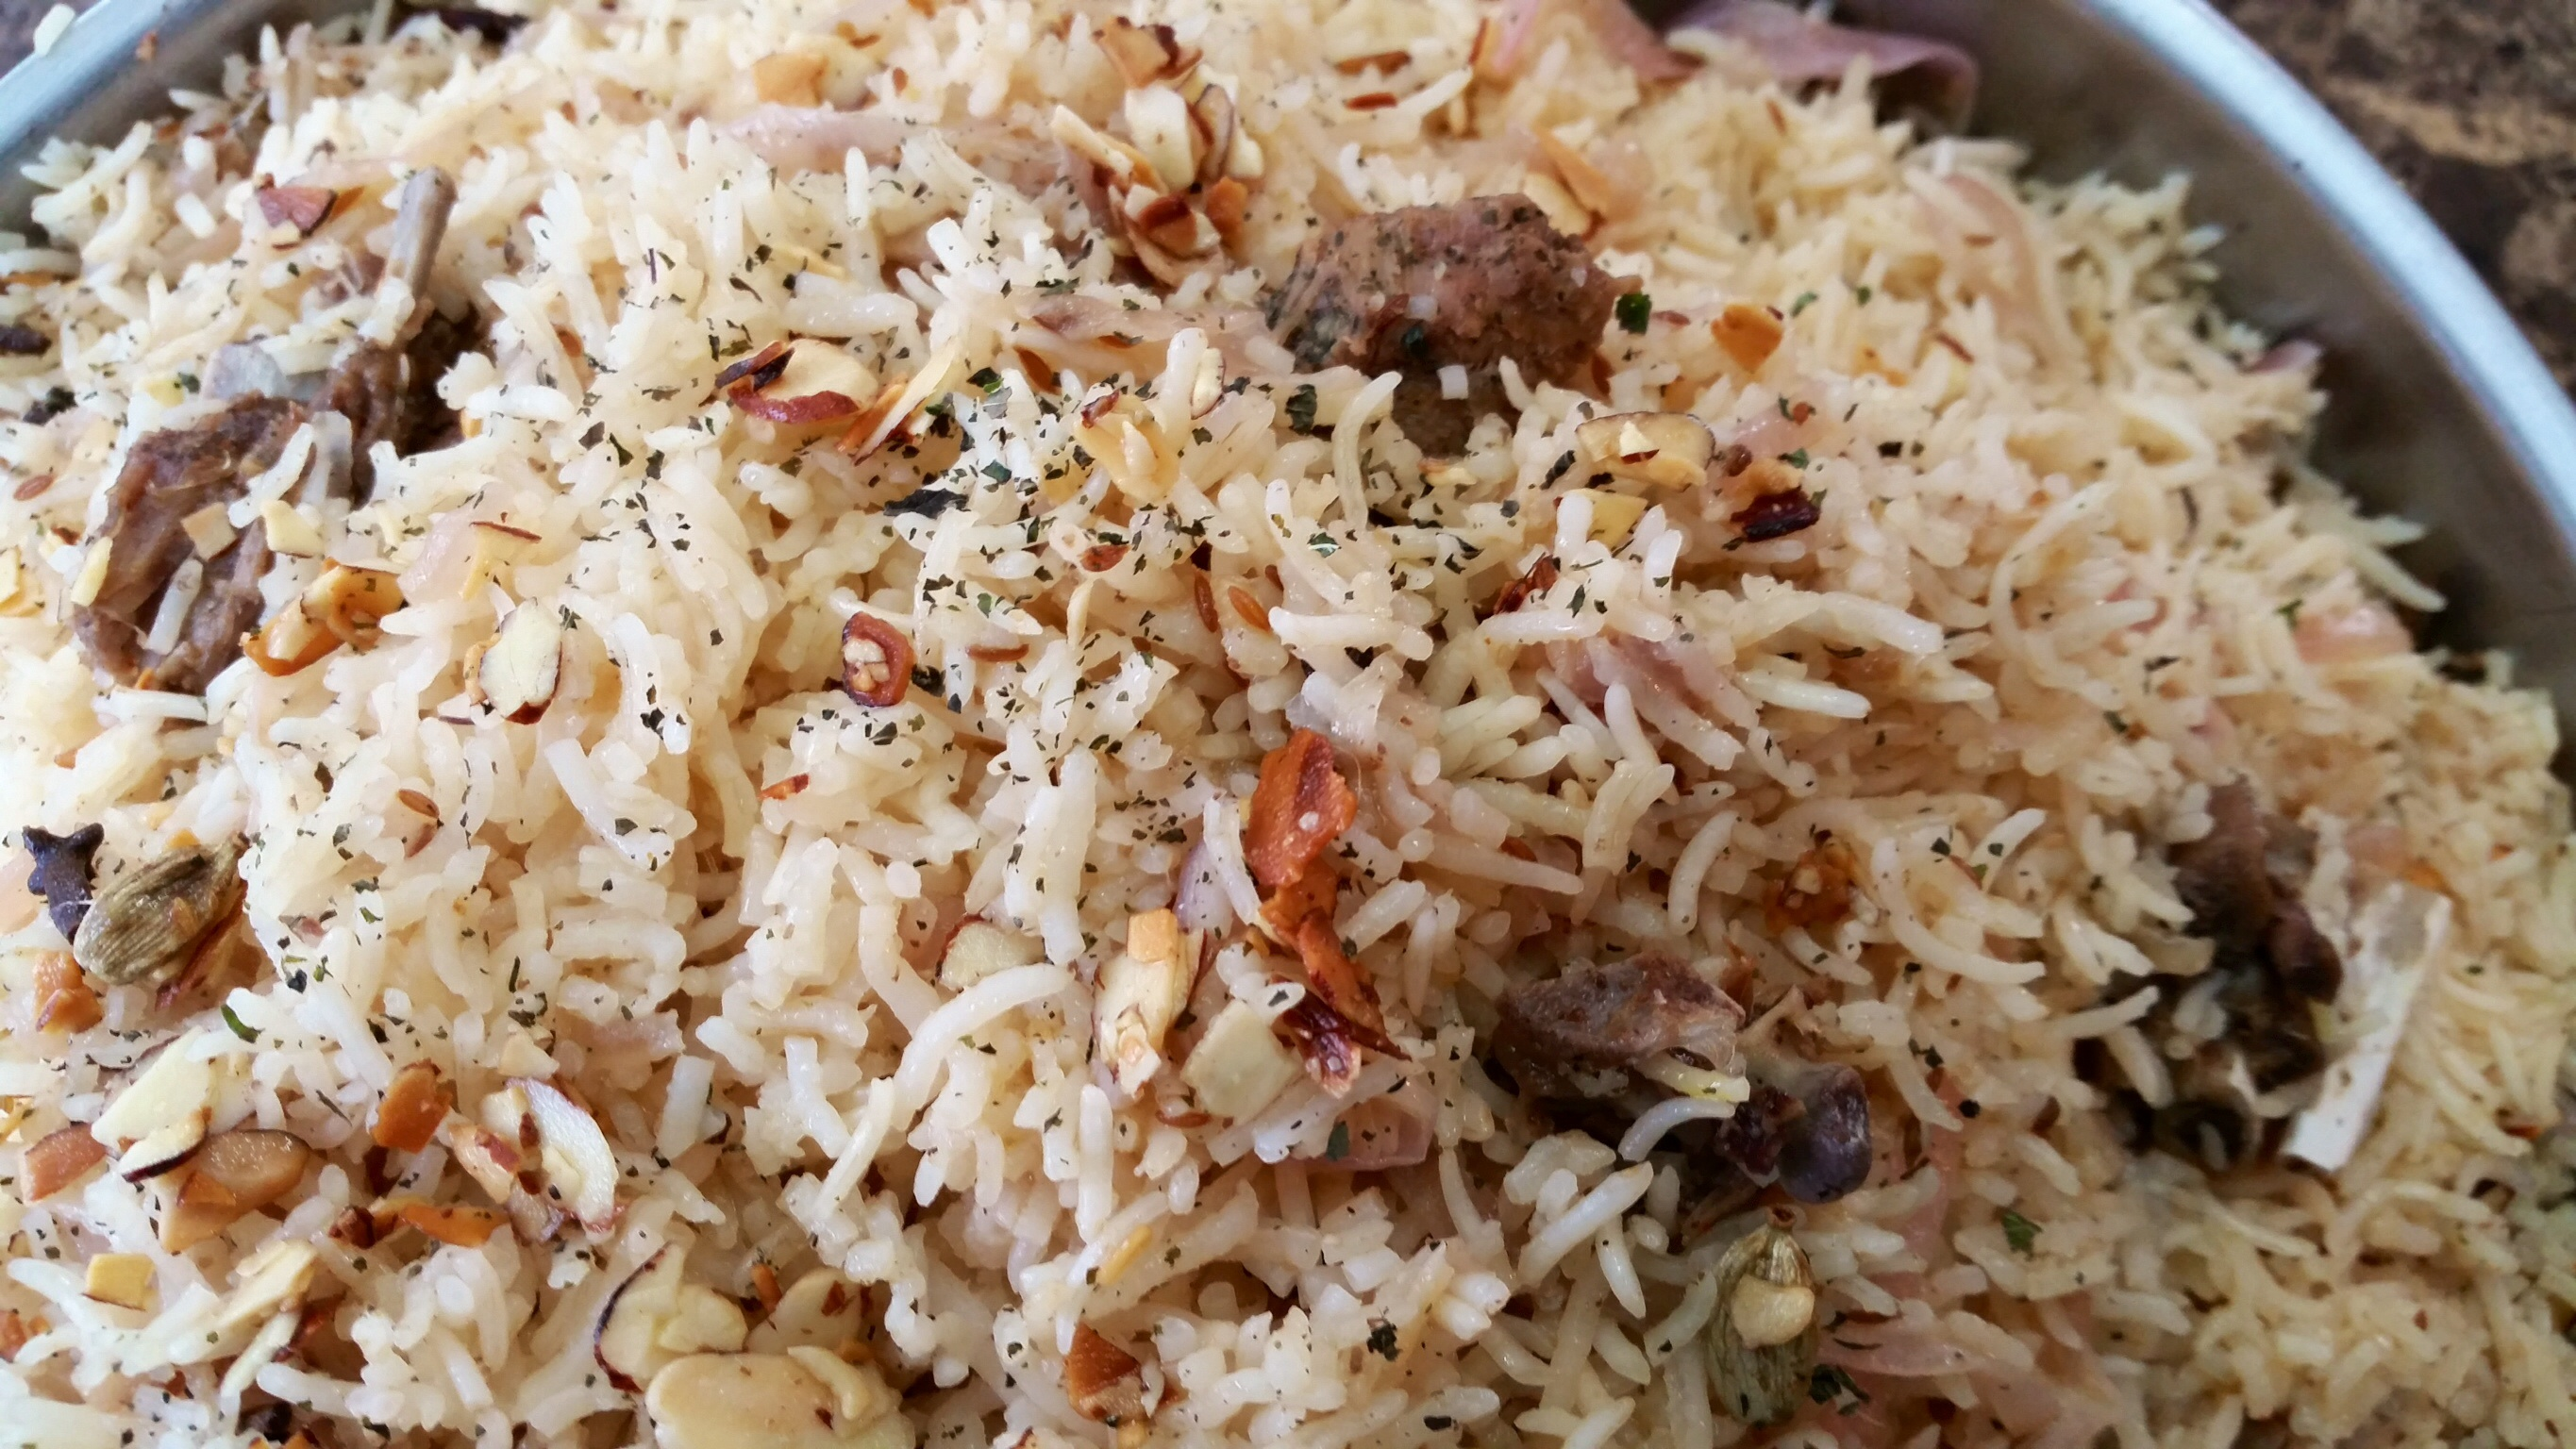 Pictures Vegetable Yakhni Pulao Recipe Veg Yakhni Pulao Pictures